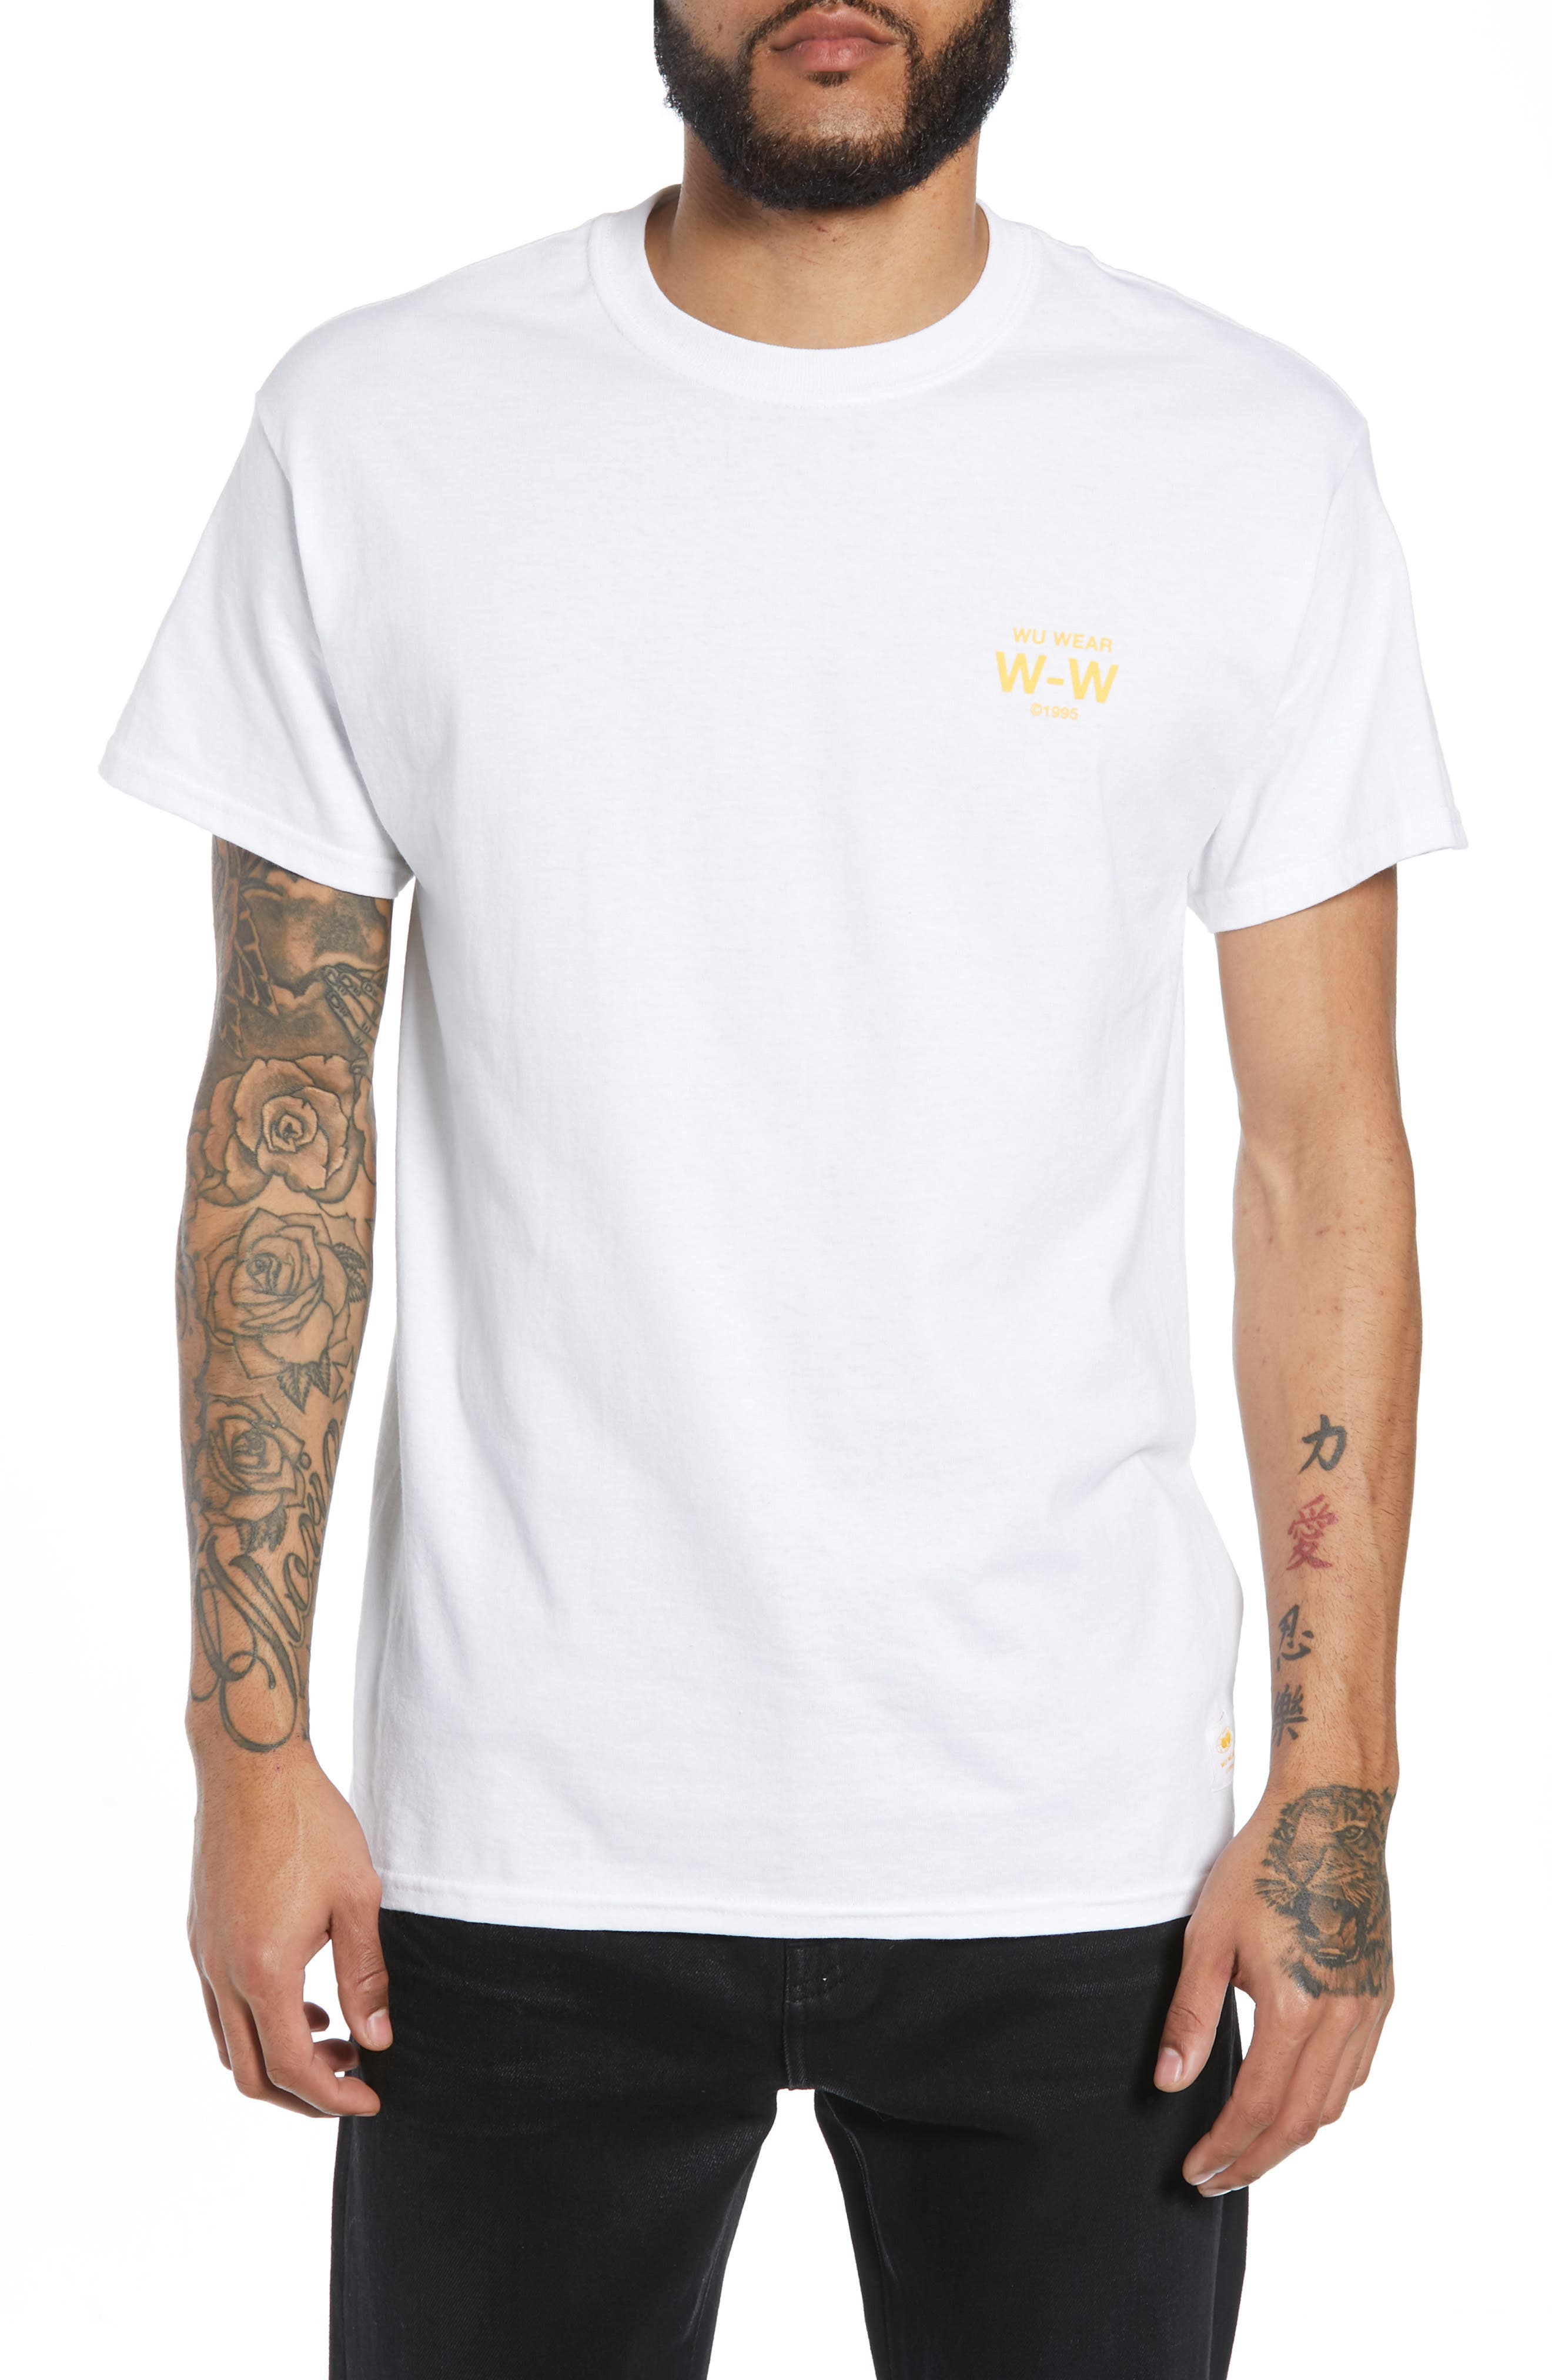 WU WEAR Straight From The Grains Glove Graphic T-Shirt in White